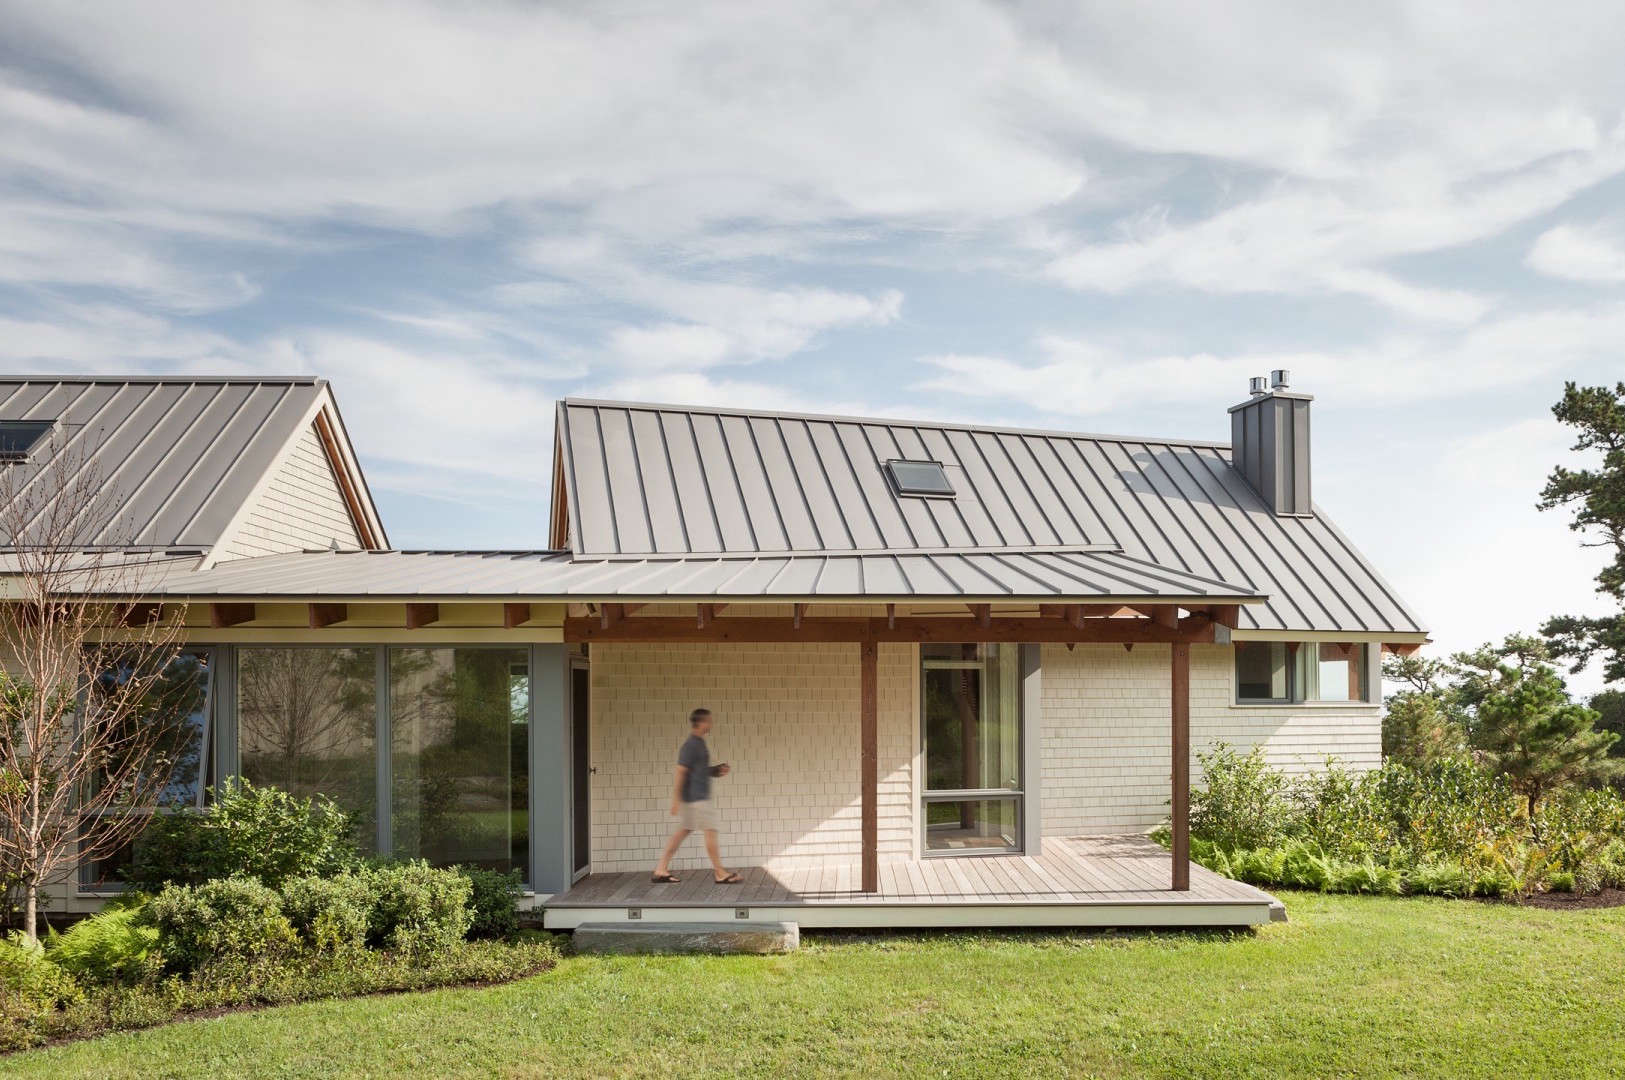 10 favorites wood shingled beach houses from the remodelista